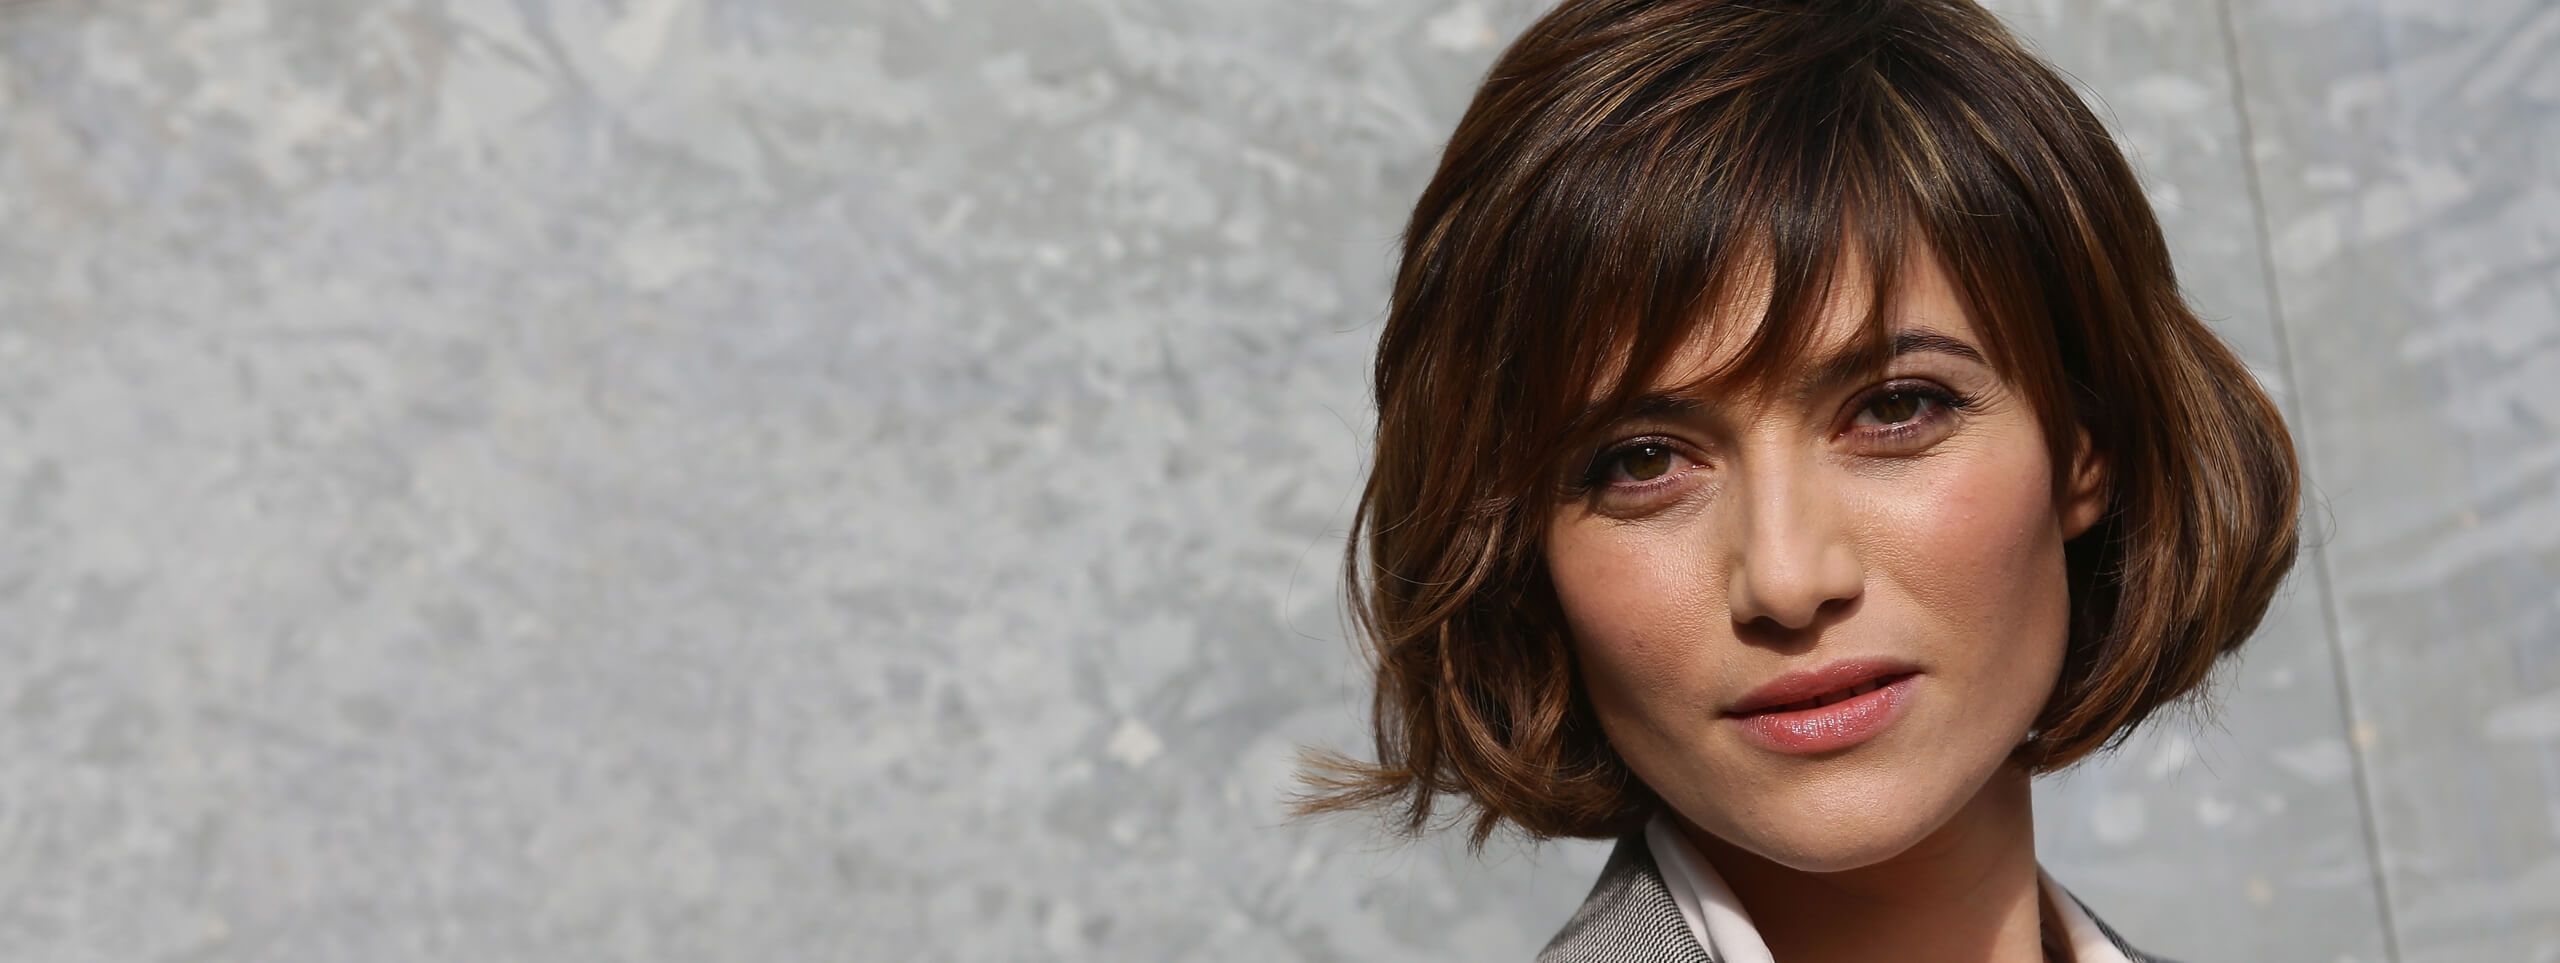 Woman with a wavy bob hairstyle